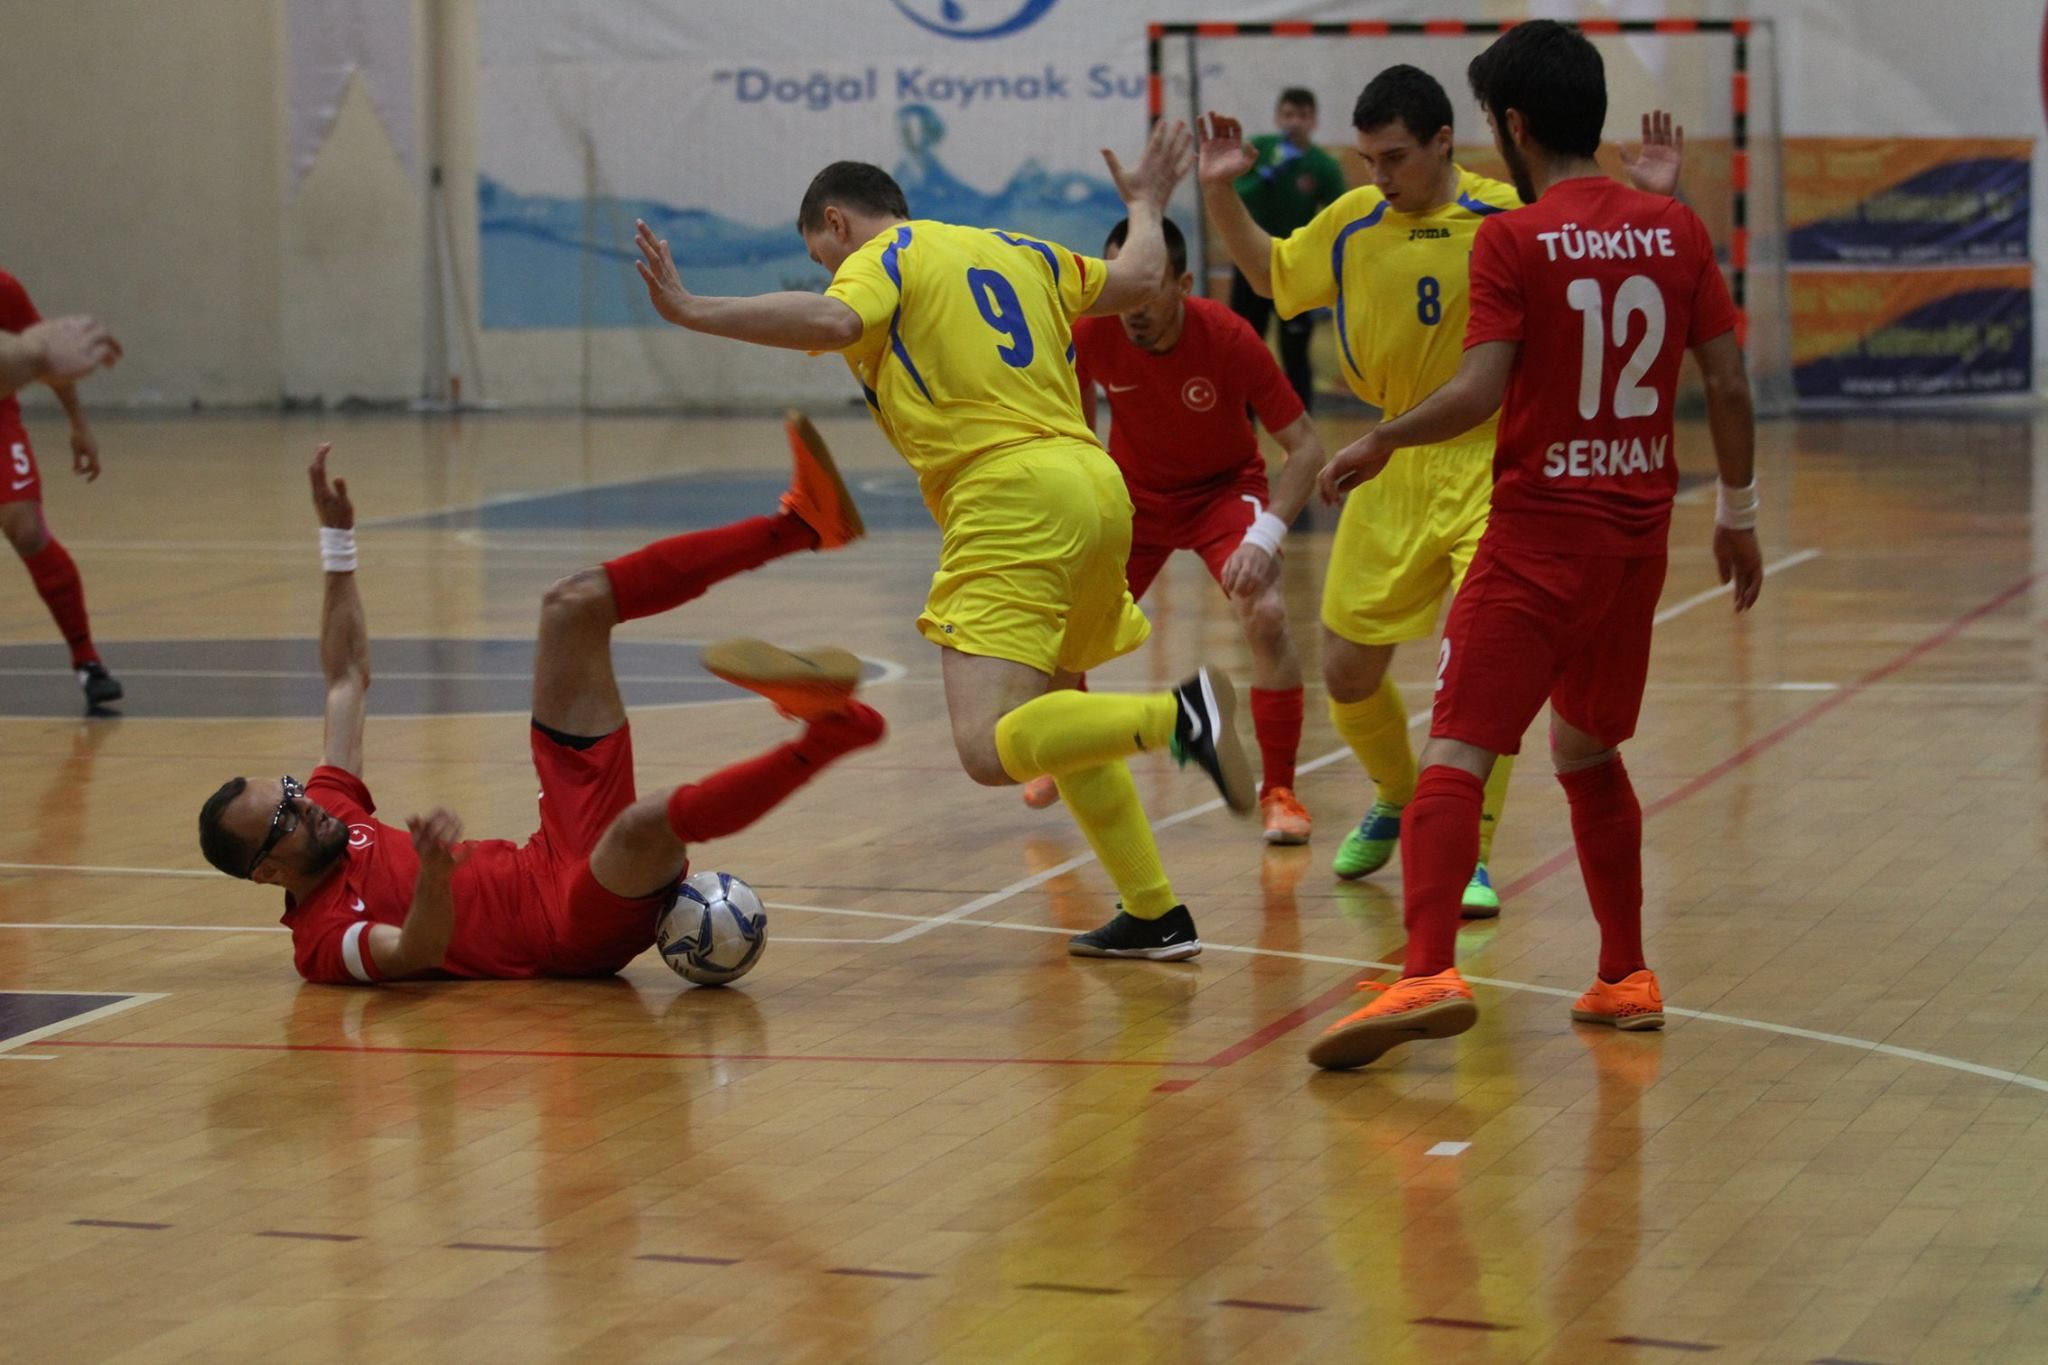 Seven teams to contest IBSA Partially Sighted Football World Championships